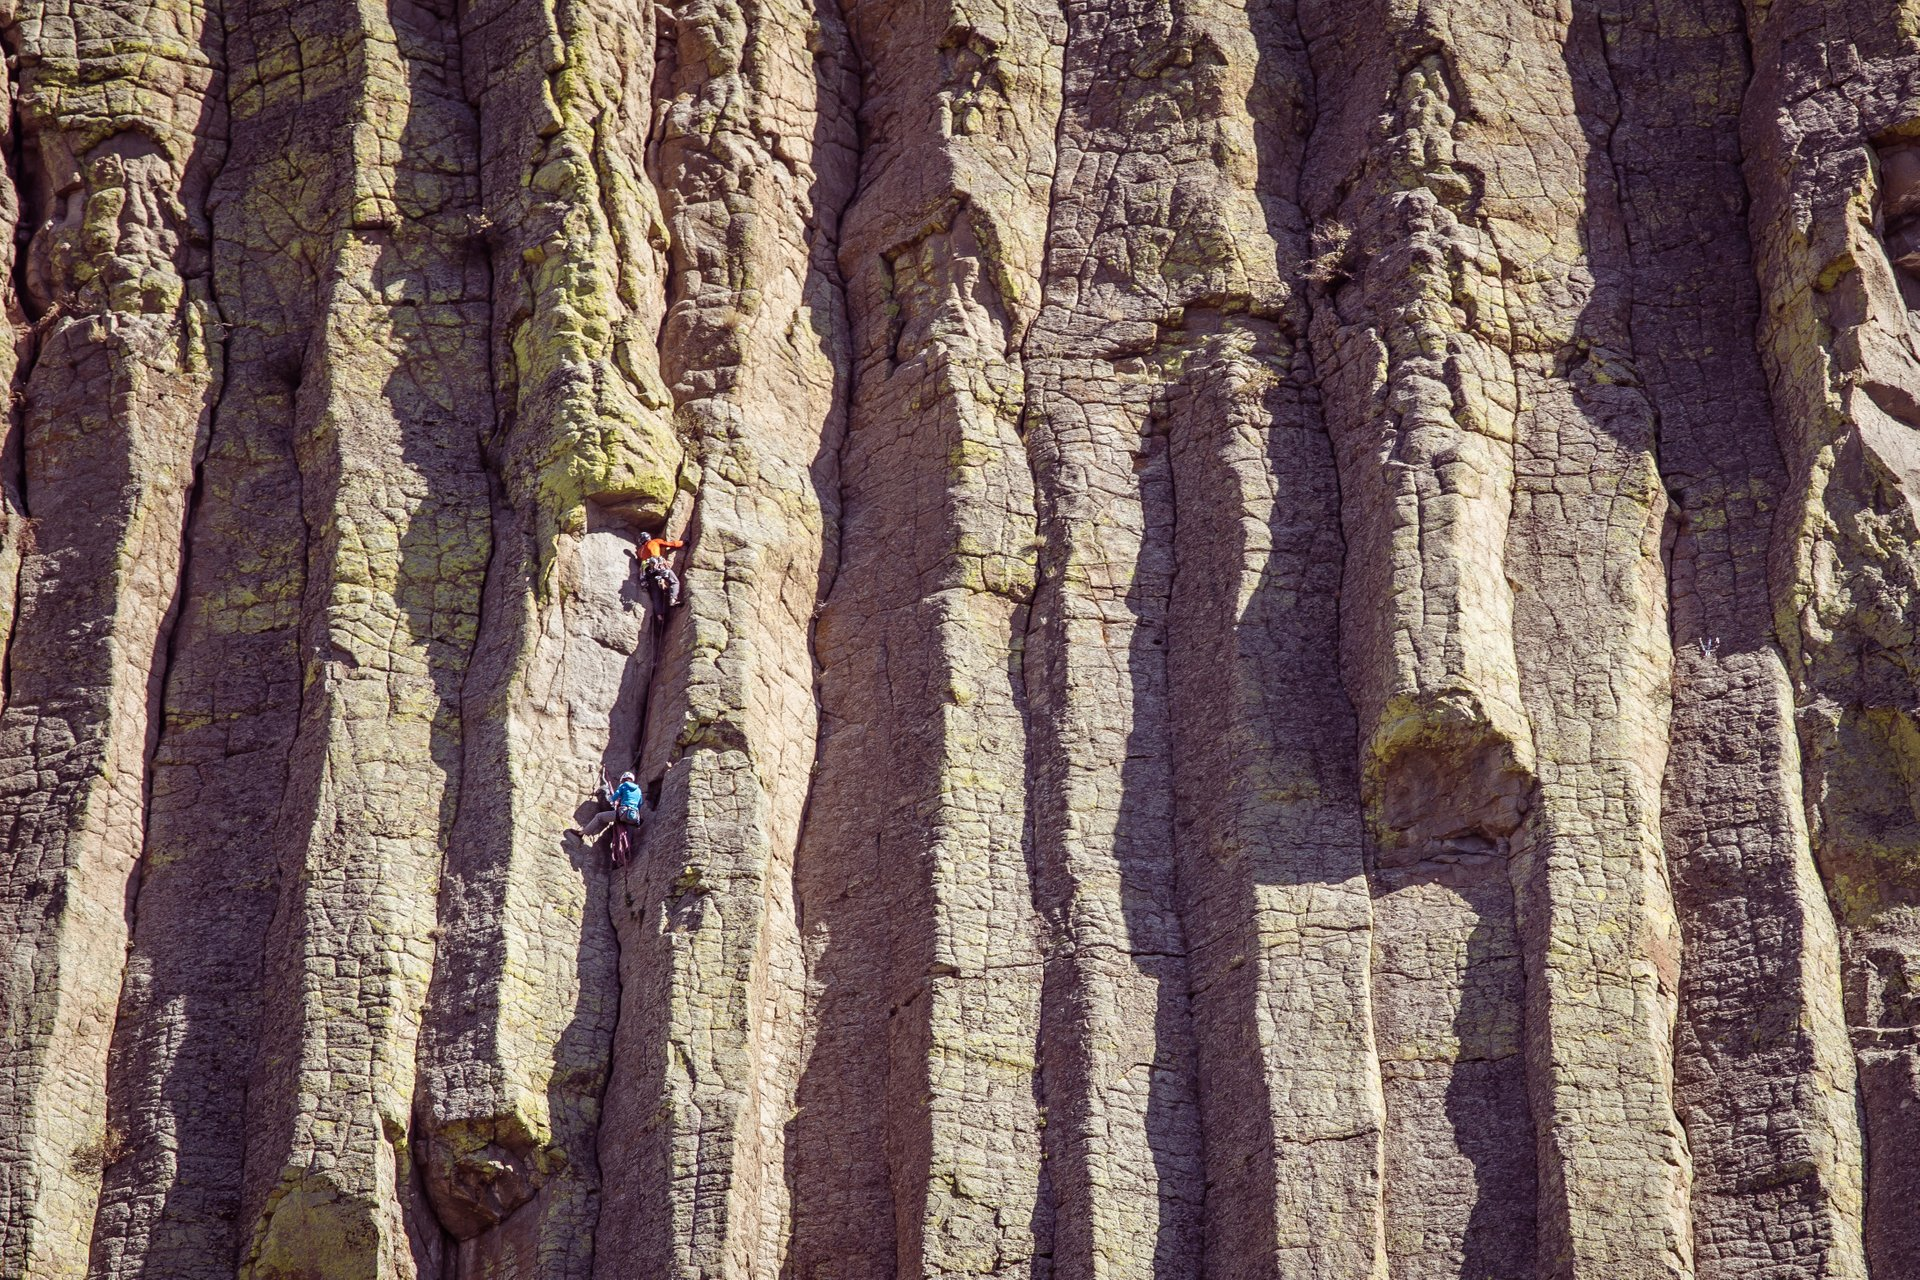 Rock Climbing at Devils Tower National Monument, Wyoming 2019